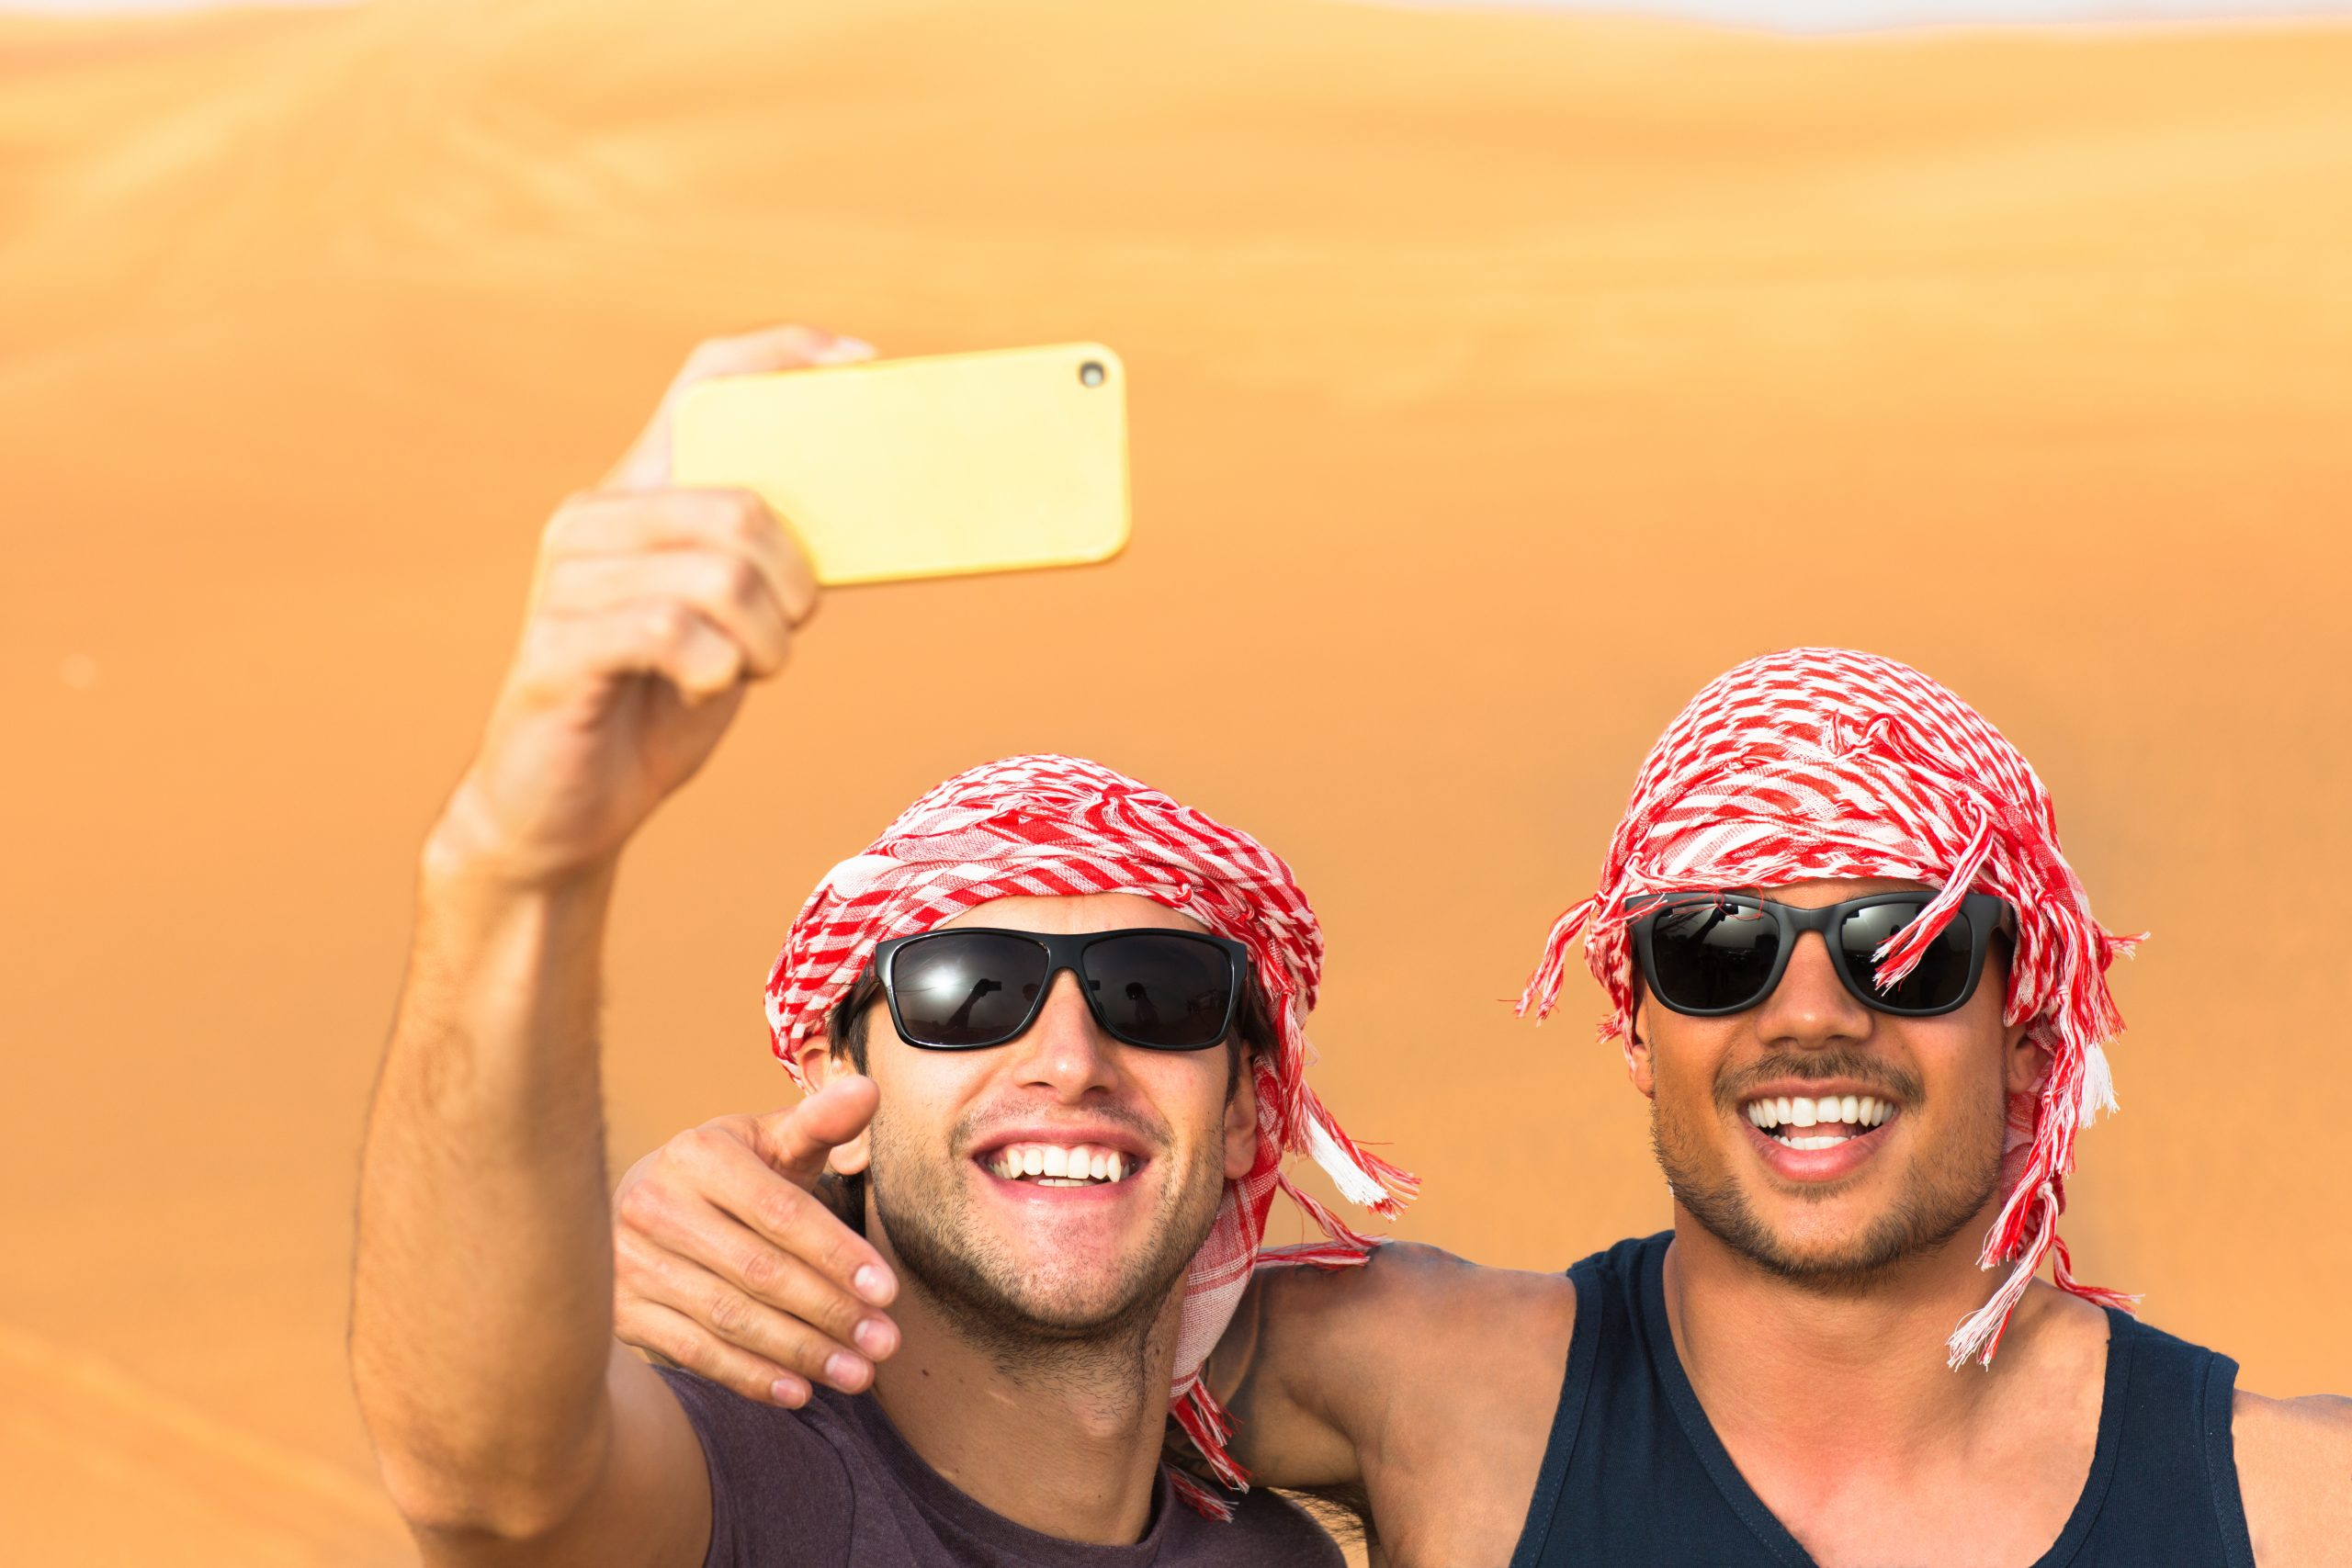 Tourism and Friendship - Happy young male adult friends taking a selfie together during their travels in Arabian desert dunes safari.